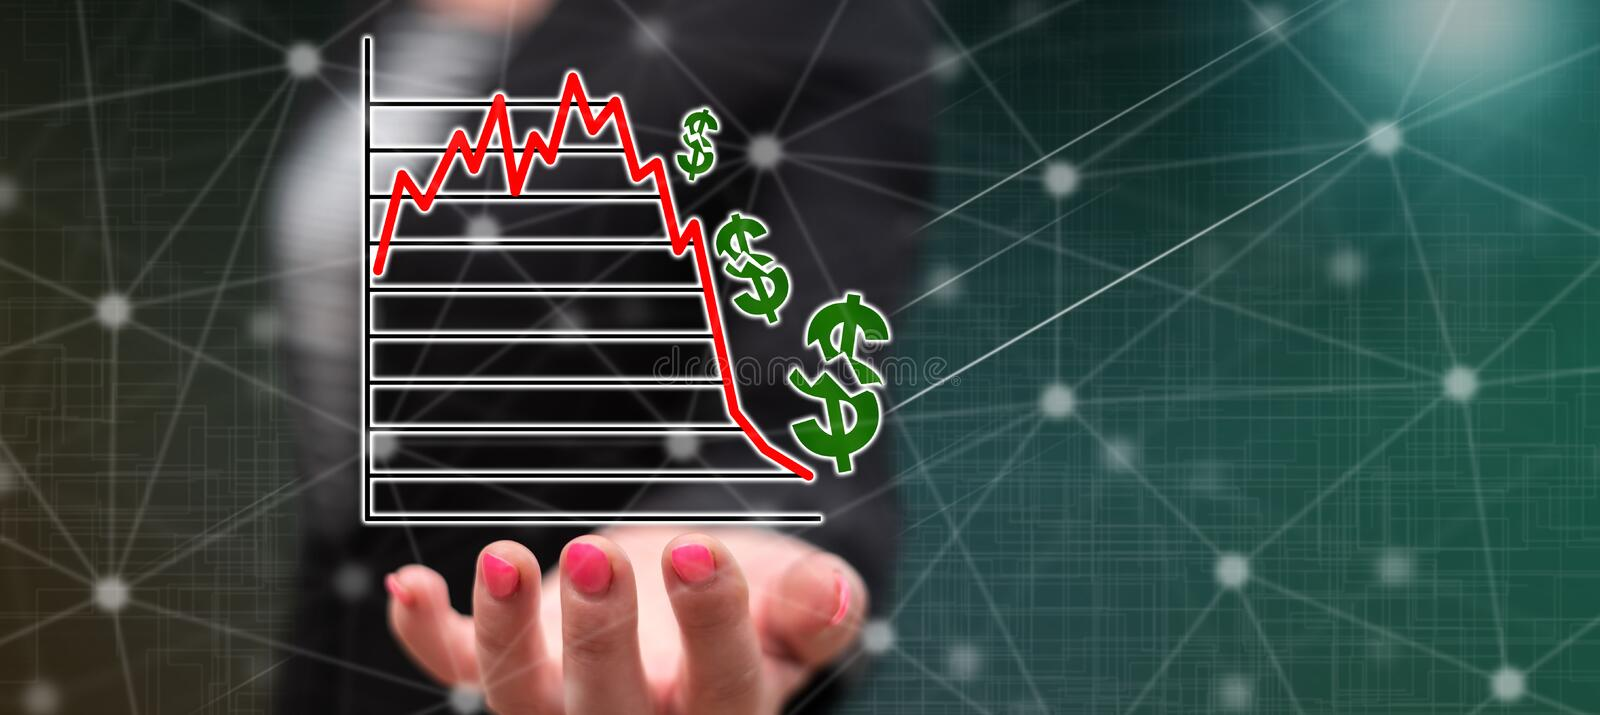 Concept of stock market crash. Stock market crash concept above the hand of a woman in background stock illustration